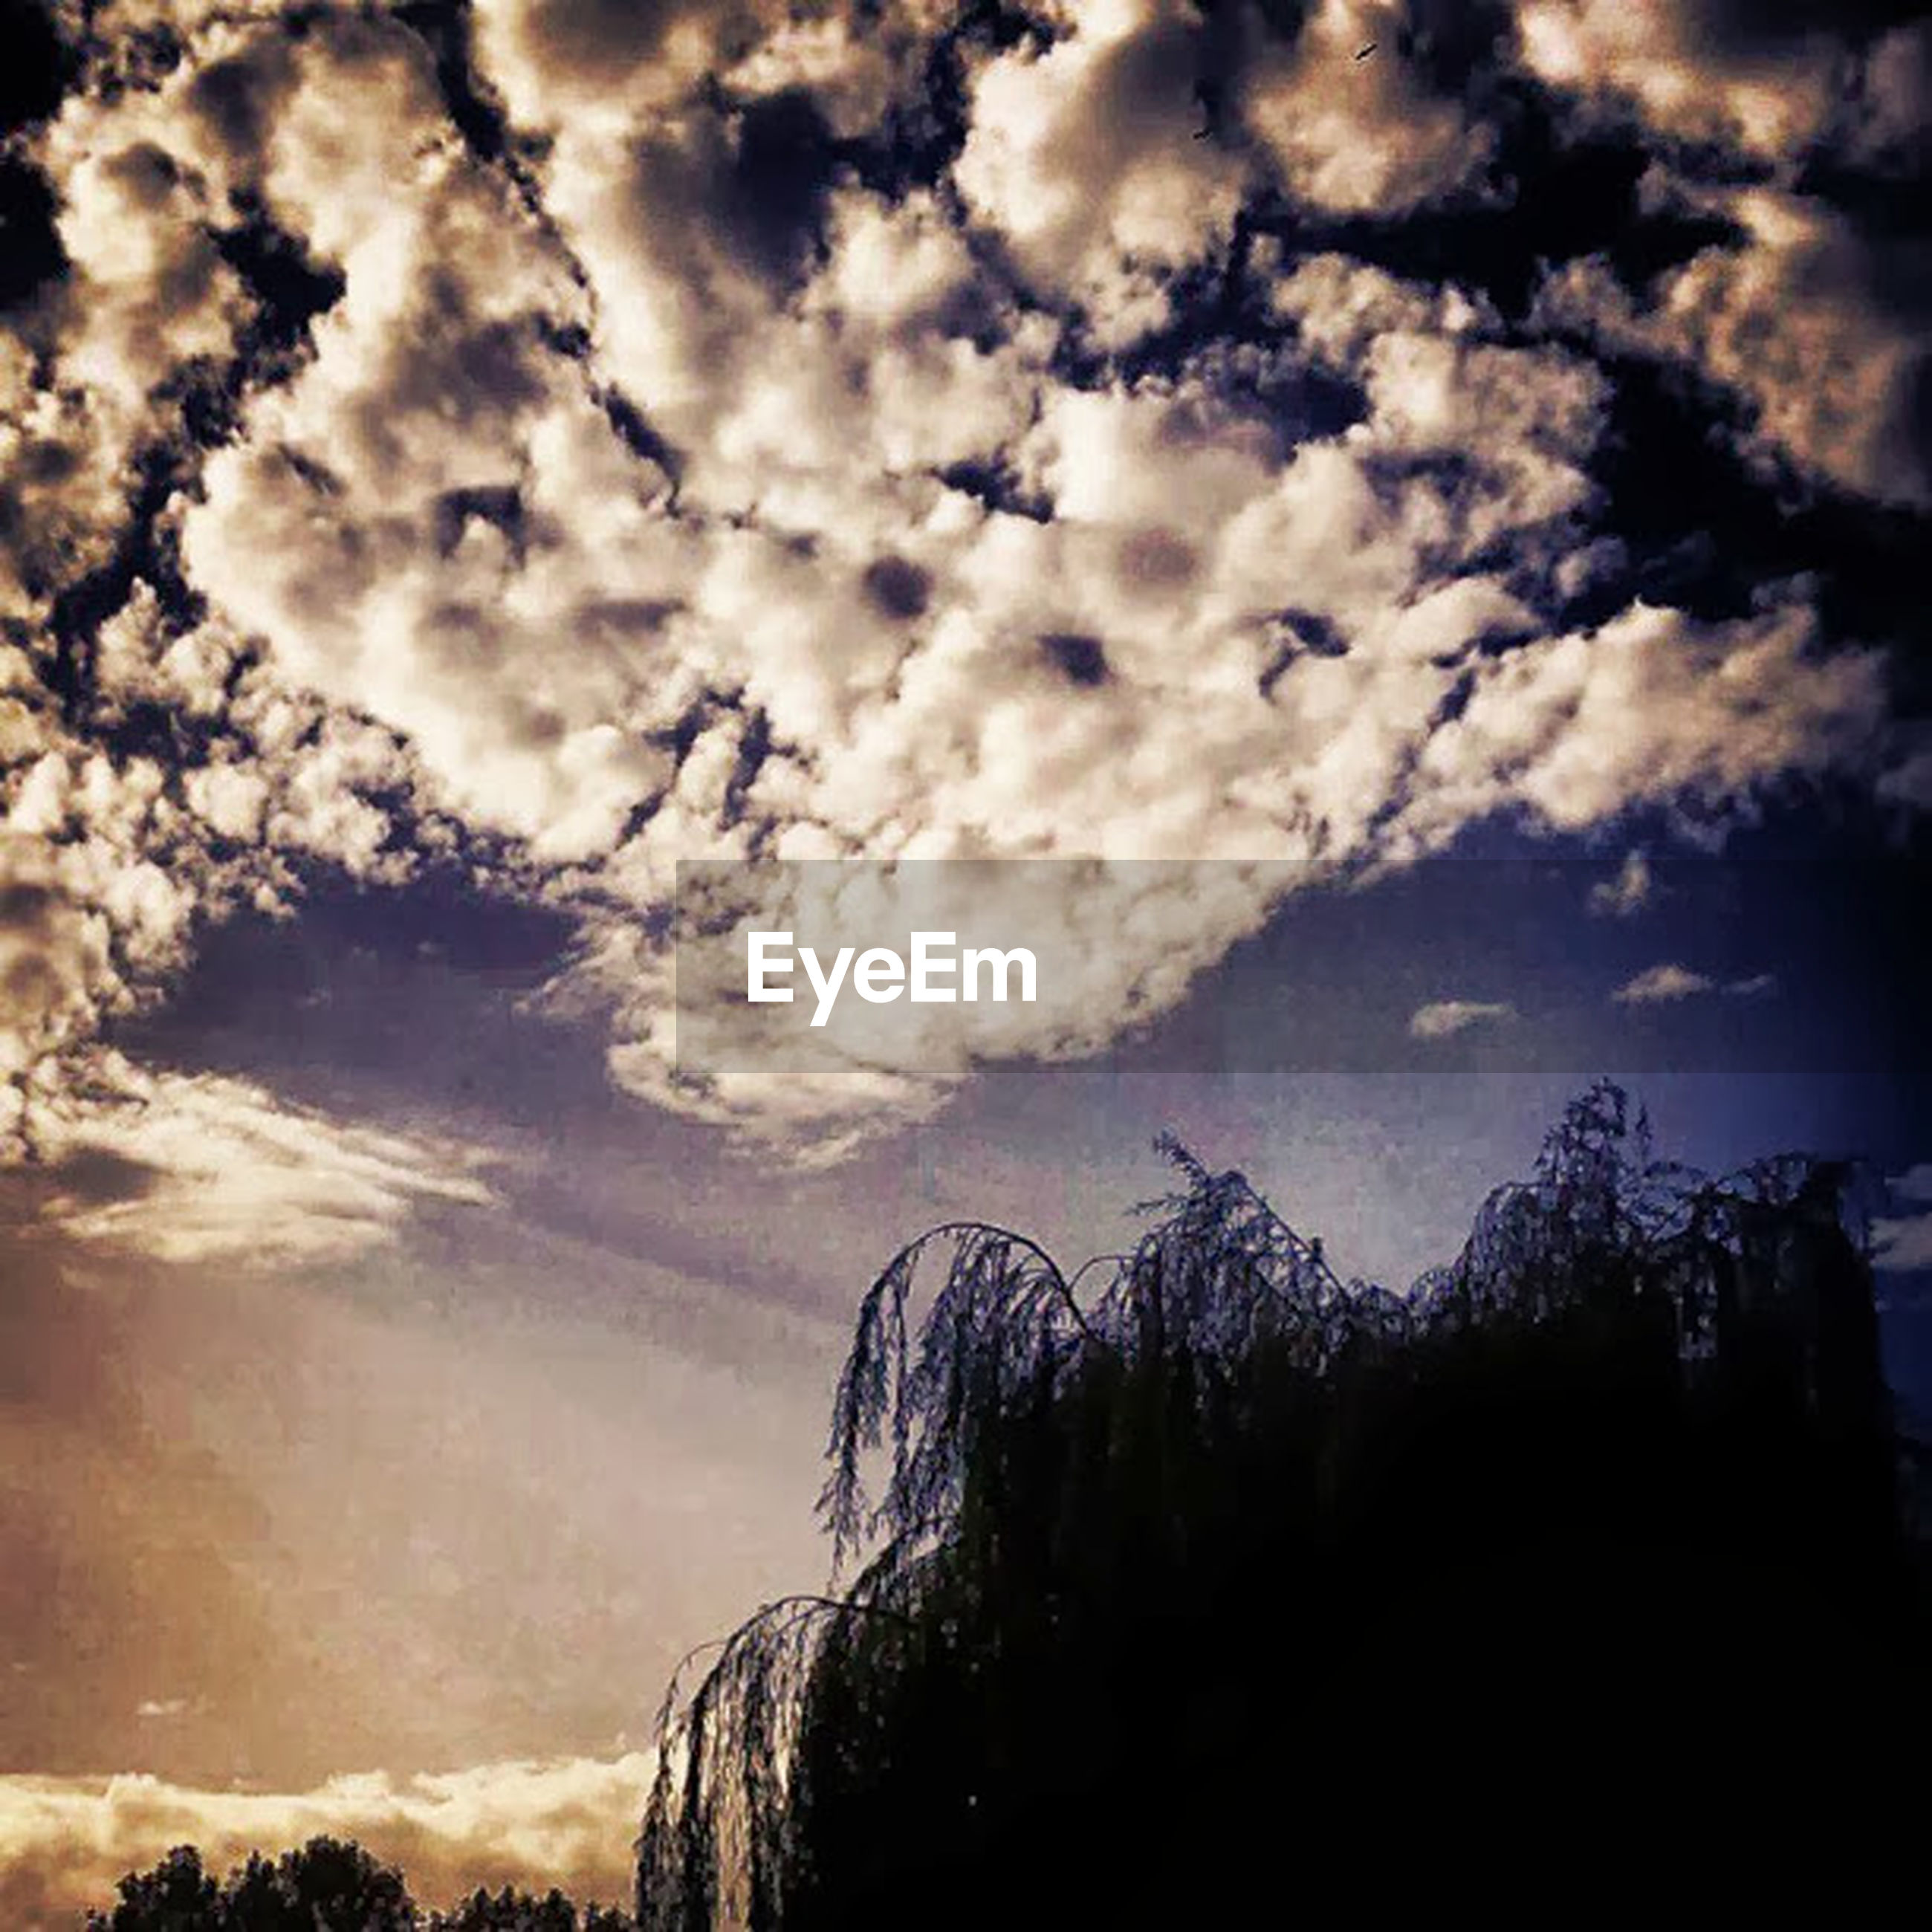 sky, cloud - sky, cloudy, low angle view, silhouette, cloud, tree, tranquility, scenics, beauty in nature, nature, tranquil scene, weather, overcast, dusk, dramatic sky, outdoors, no people, idyllic, growth